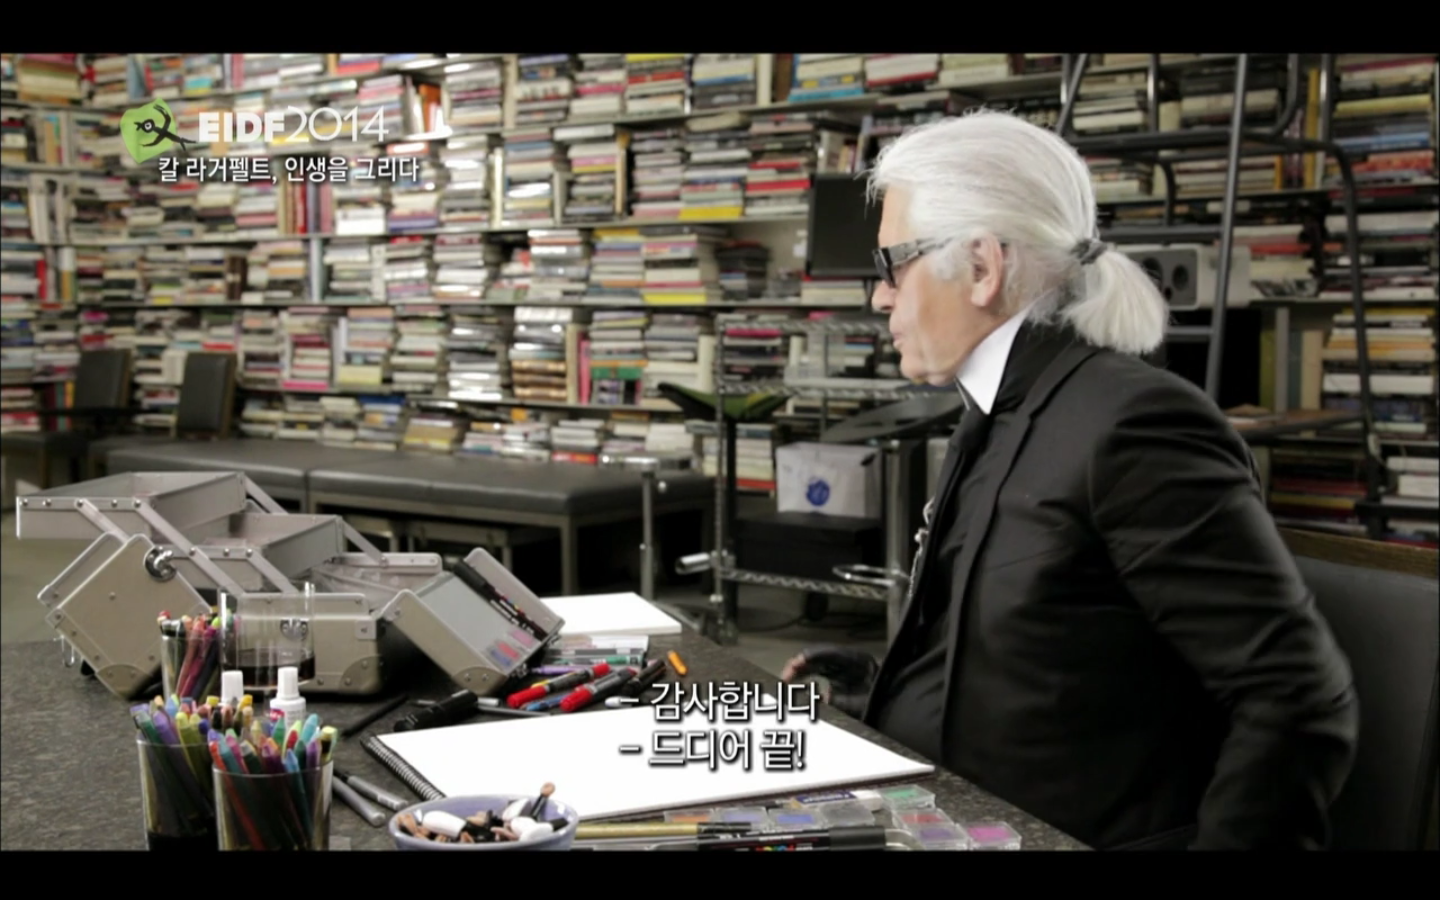 (eidf) karl lagerfelt sketches his life - 칼 라거펠트, 인생을 그리다 (2012)